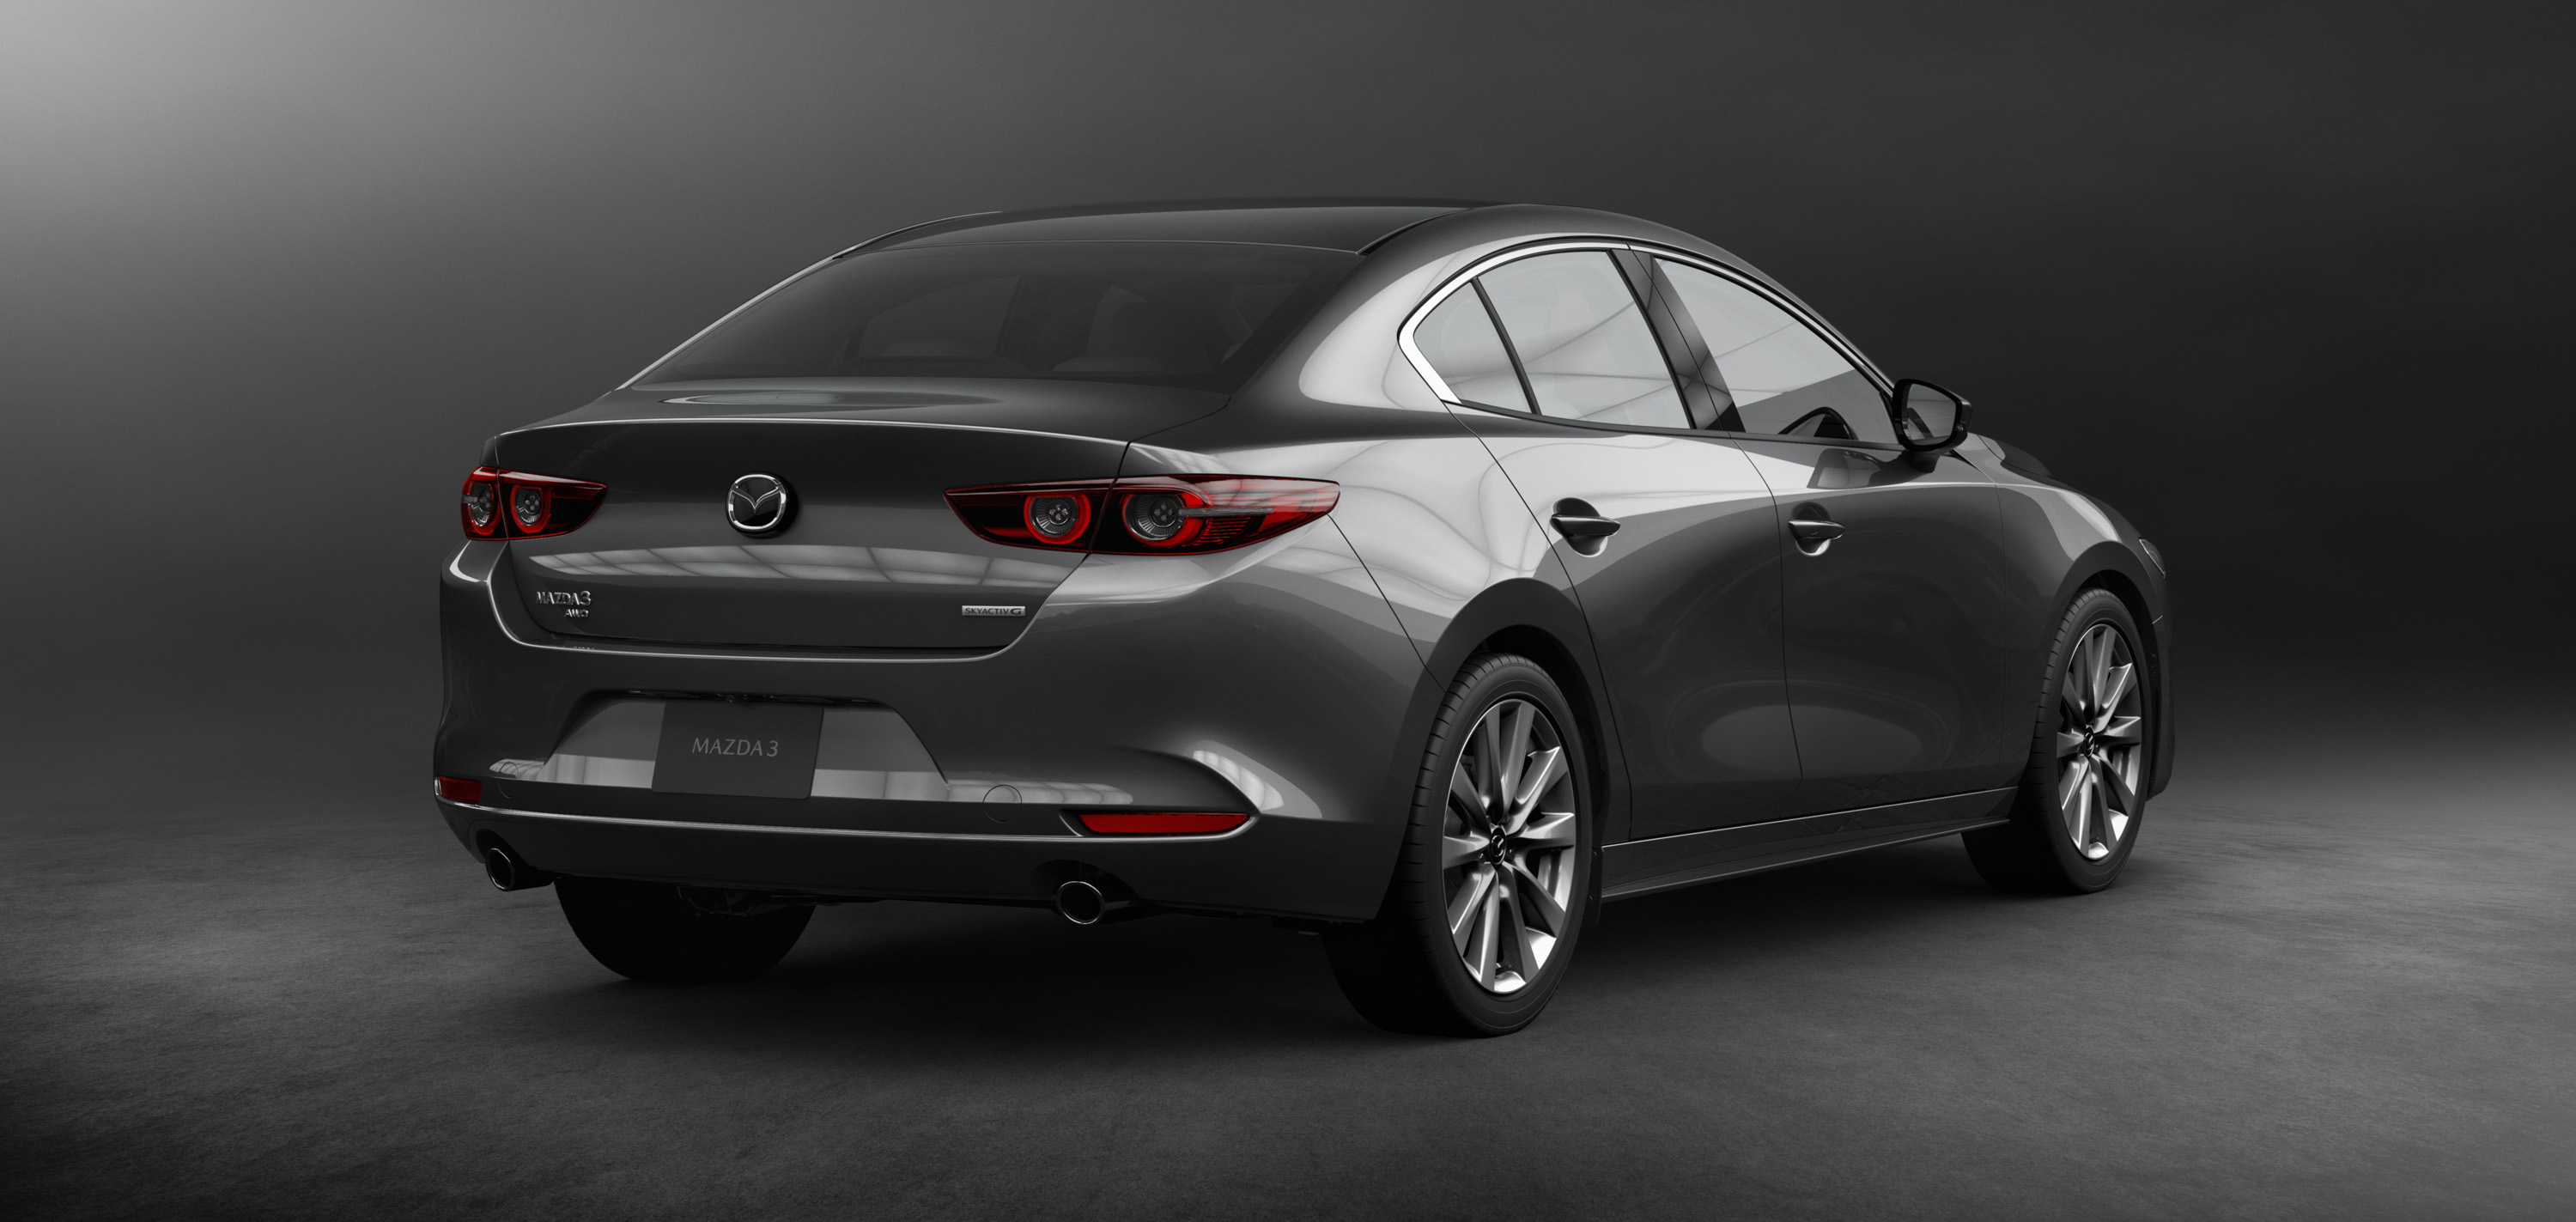 2019 Mazda 3 Sedan | Top Speed